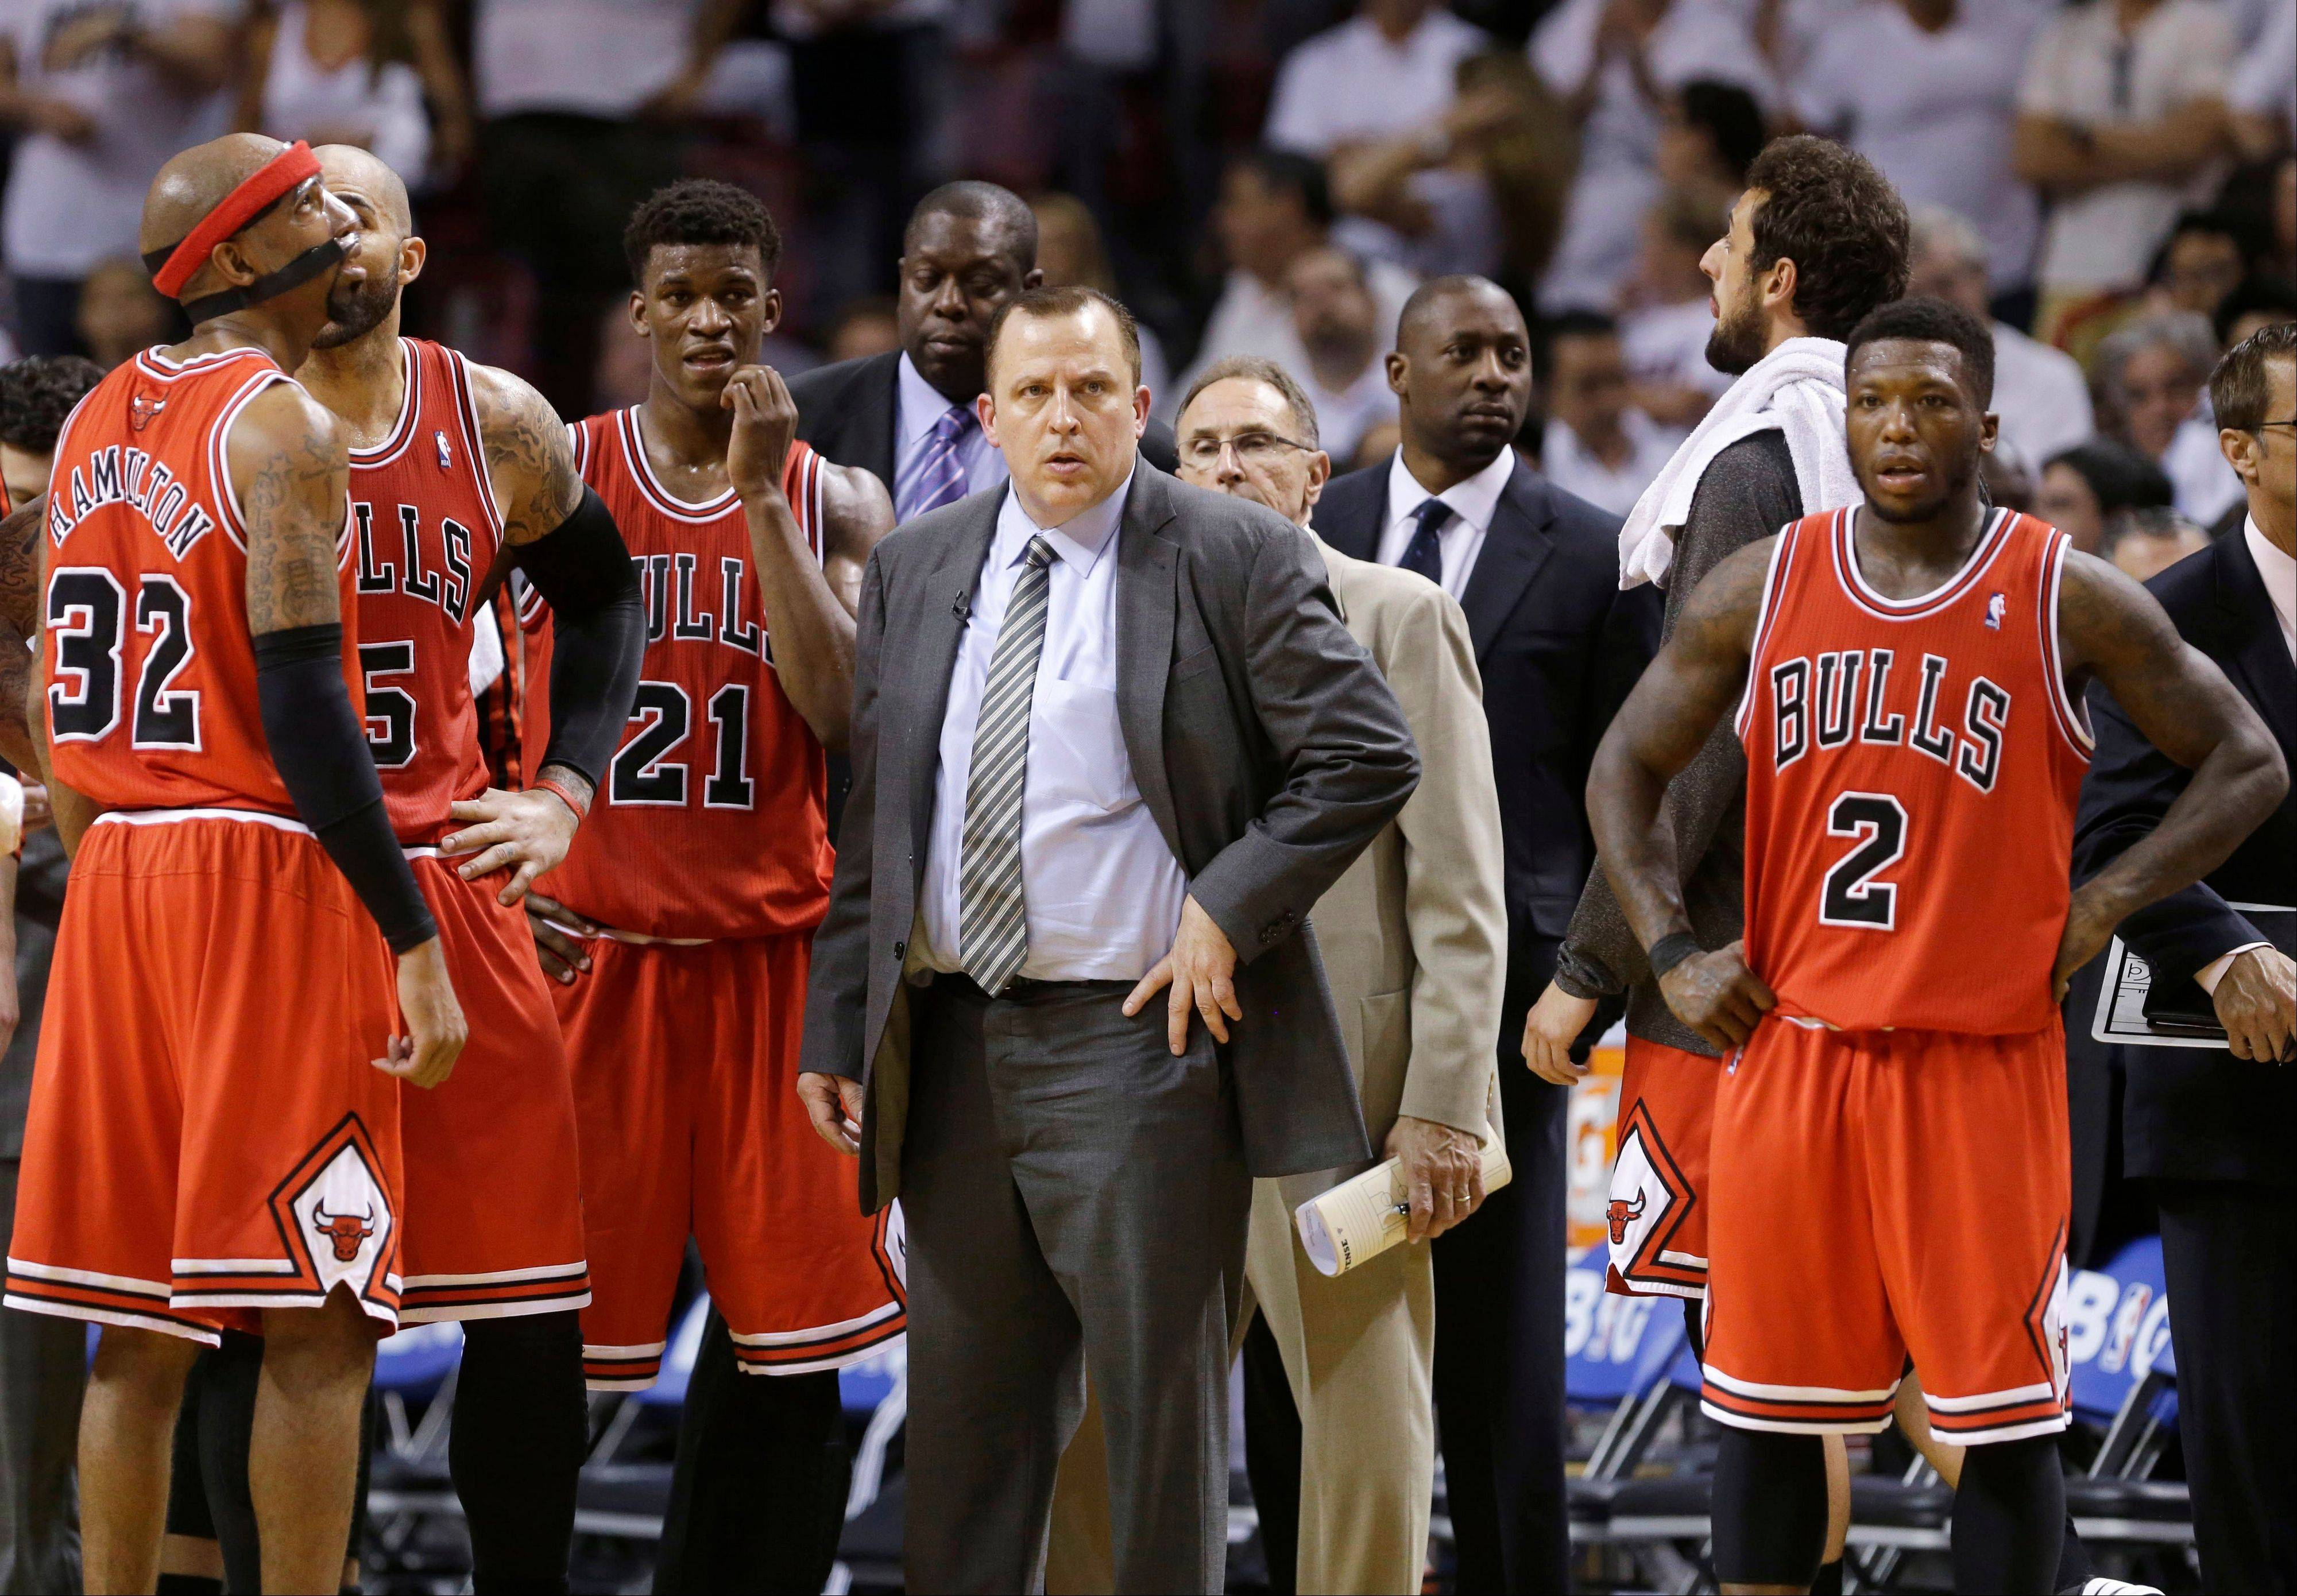 With an improvement on the injury front, coach Tom Thibodeau and the Bulls should be just fine next season.